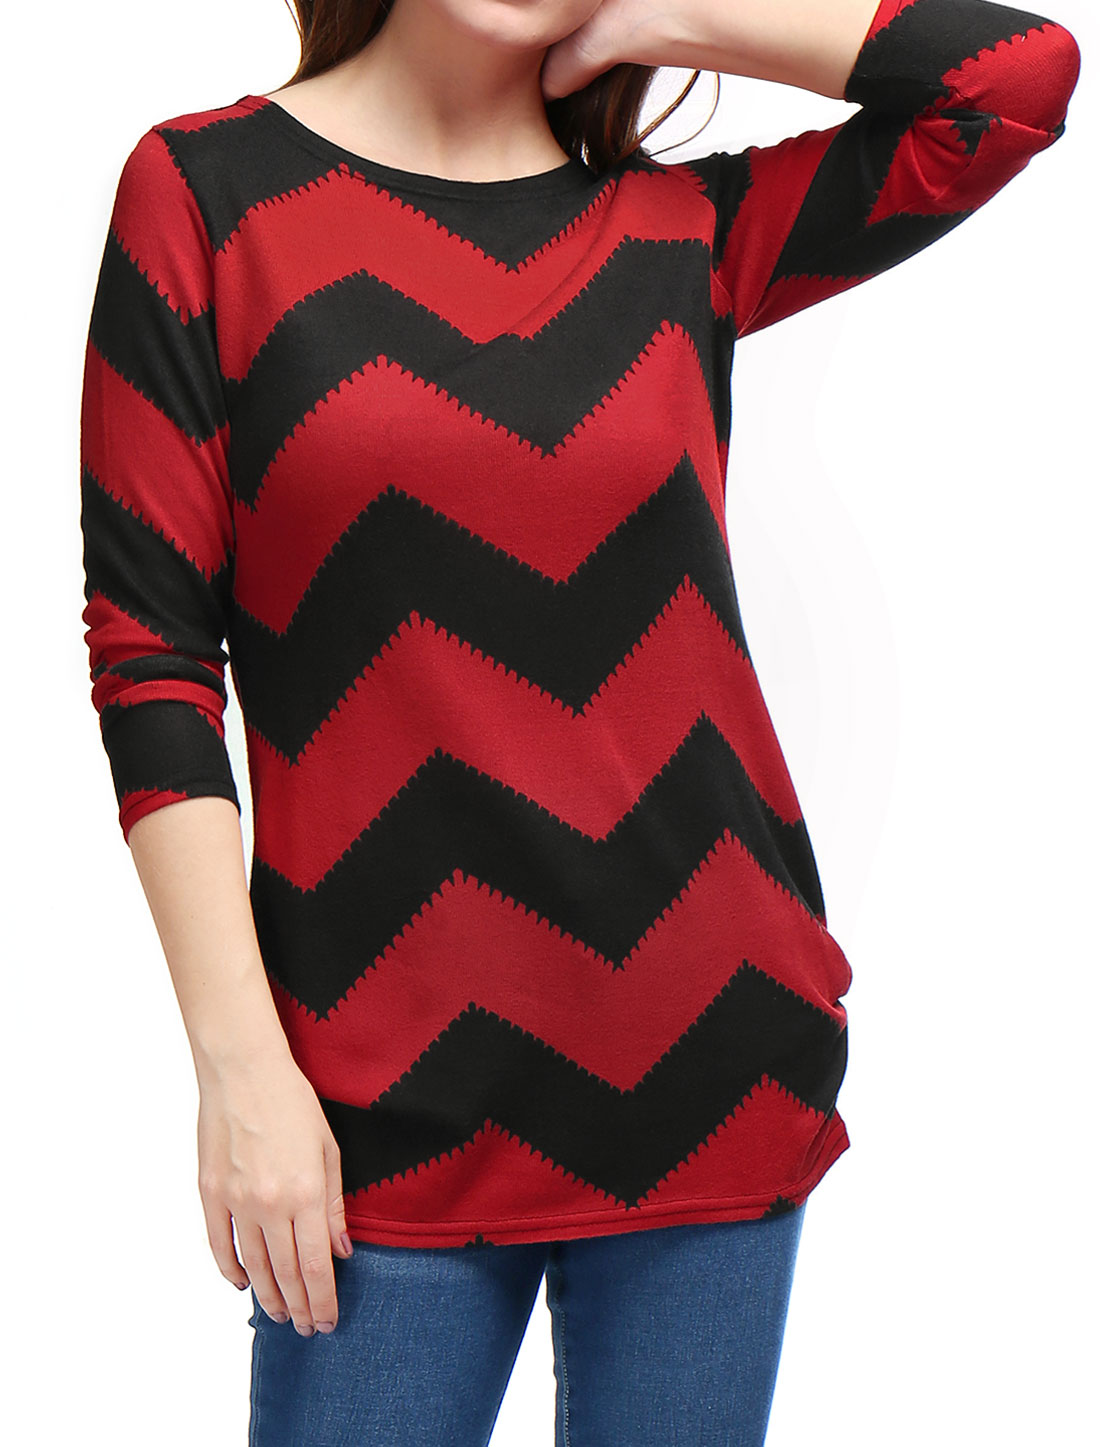 Woman Zig-Zag Pattern Knitted Relax Fit Tunic Top Black Red XL